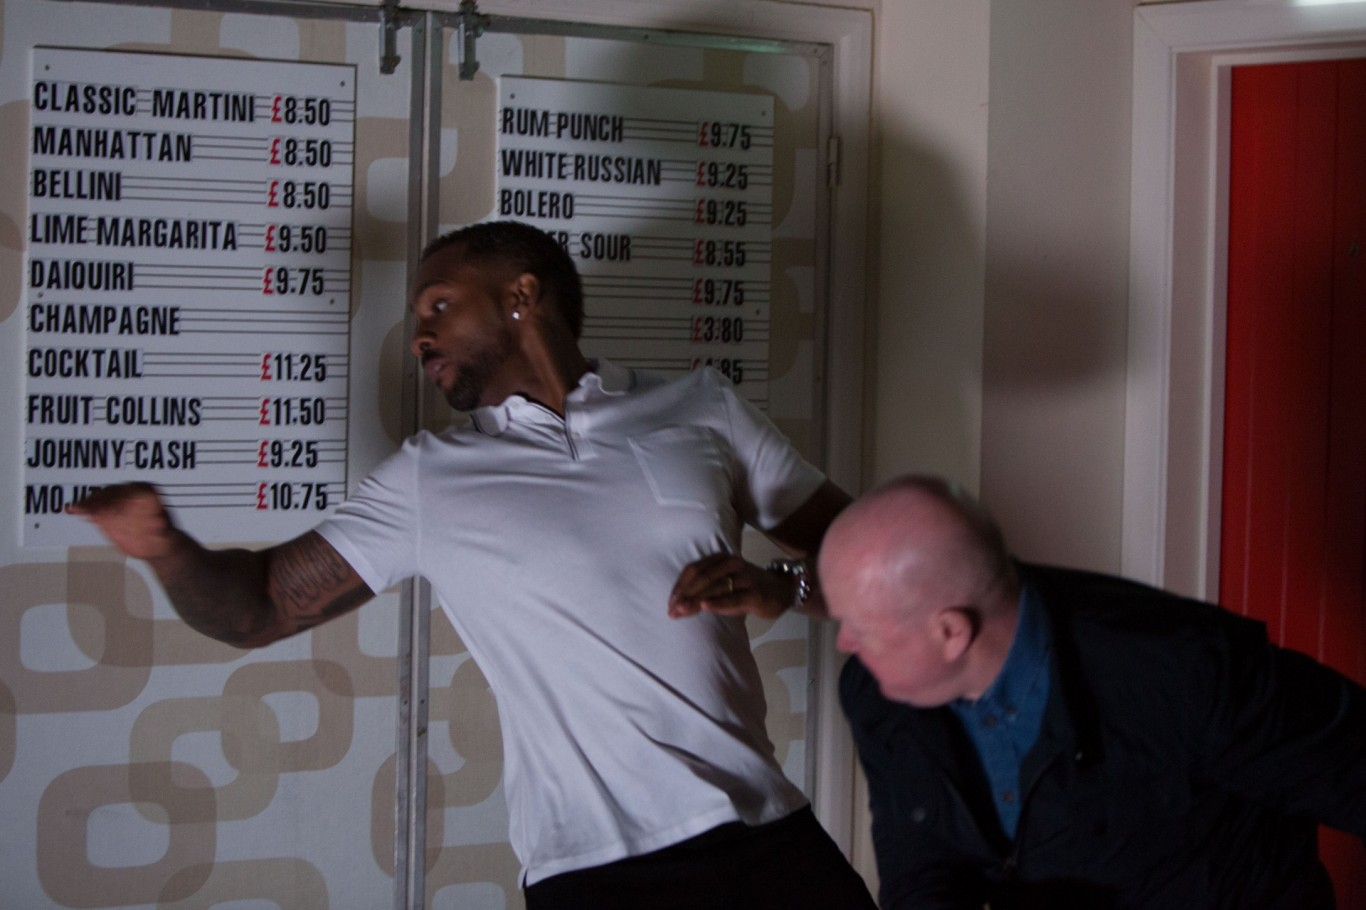 Phil Mitchell punches Vincent Hubbard in EastEnders